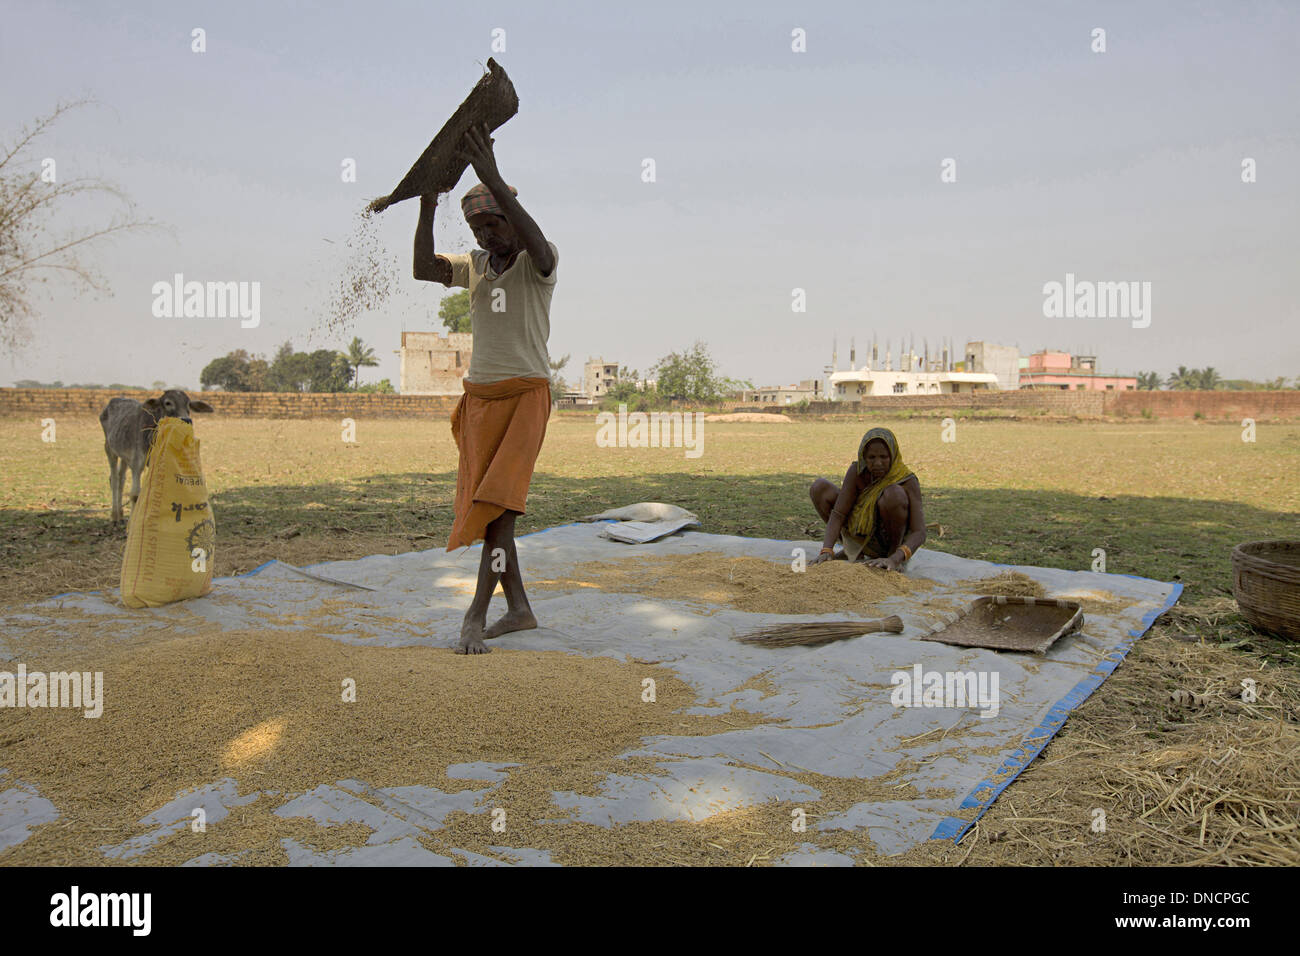 Orian man winnowing grains, Bhuvaneshwar, Orissa, India Stock Photo